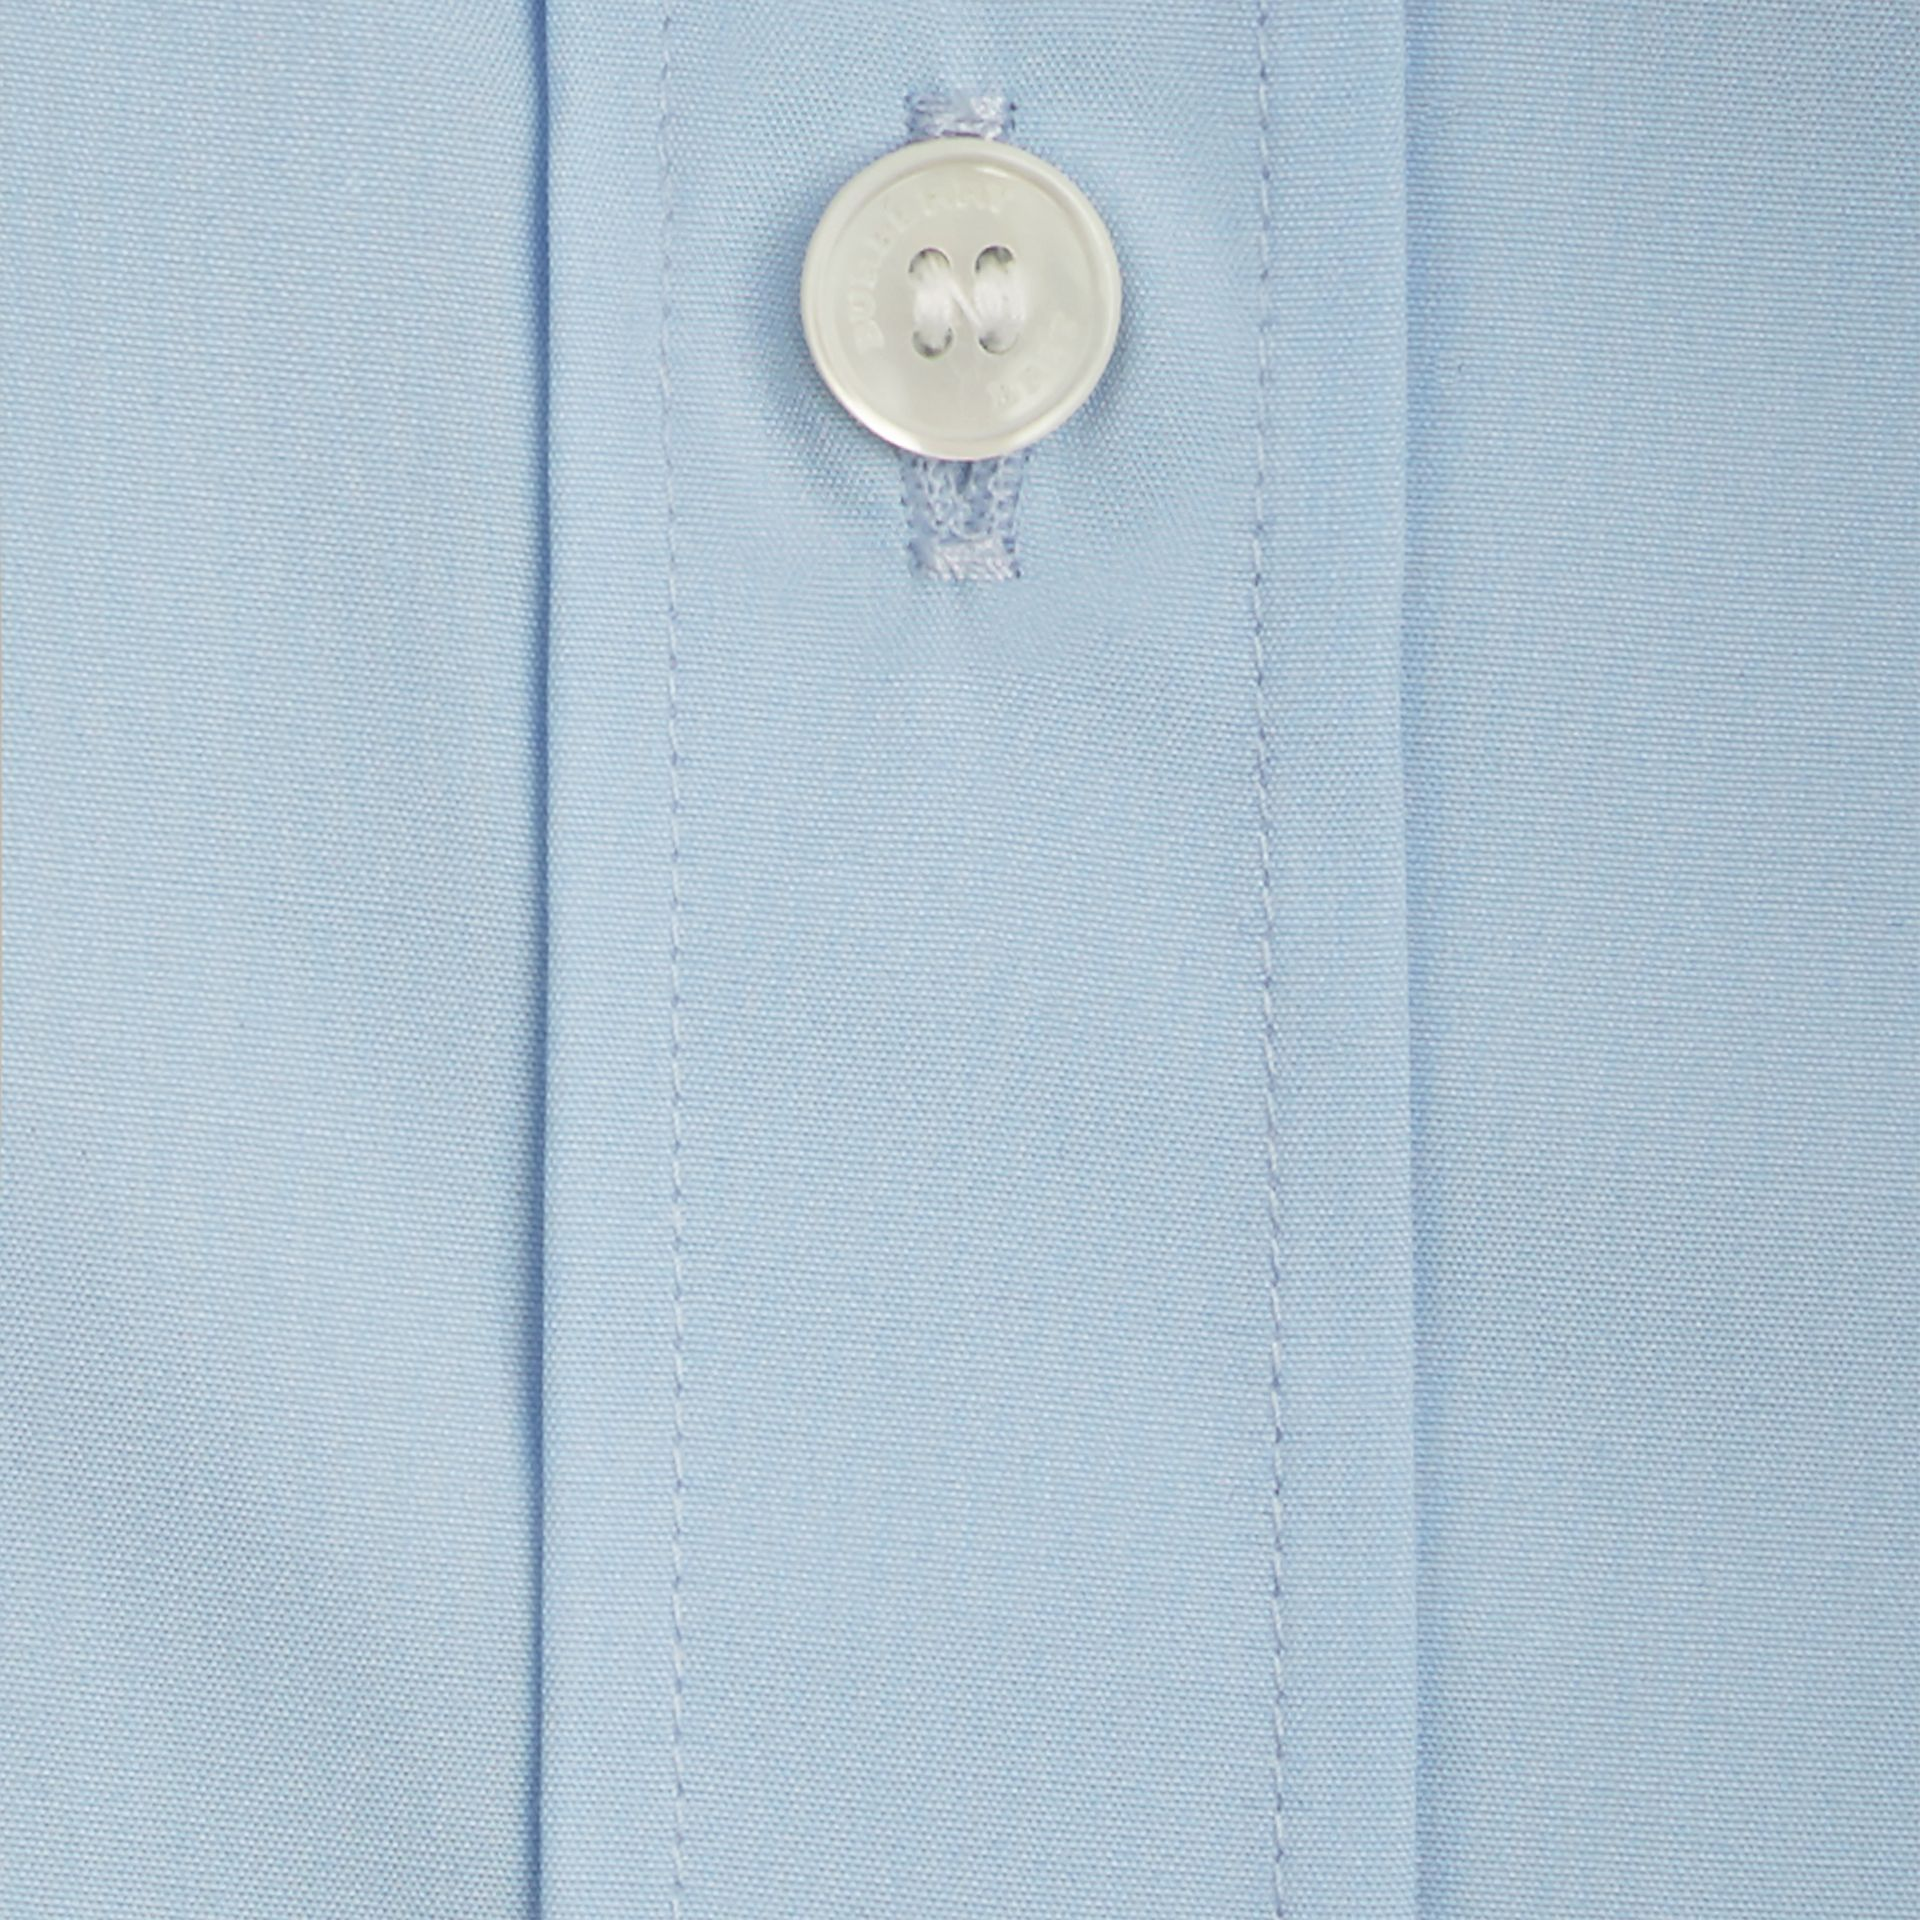 Pale blue Check Detail Stretch Cotton Poplin Shirt Pale Blue - gallery image 2